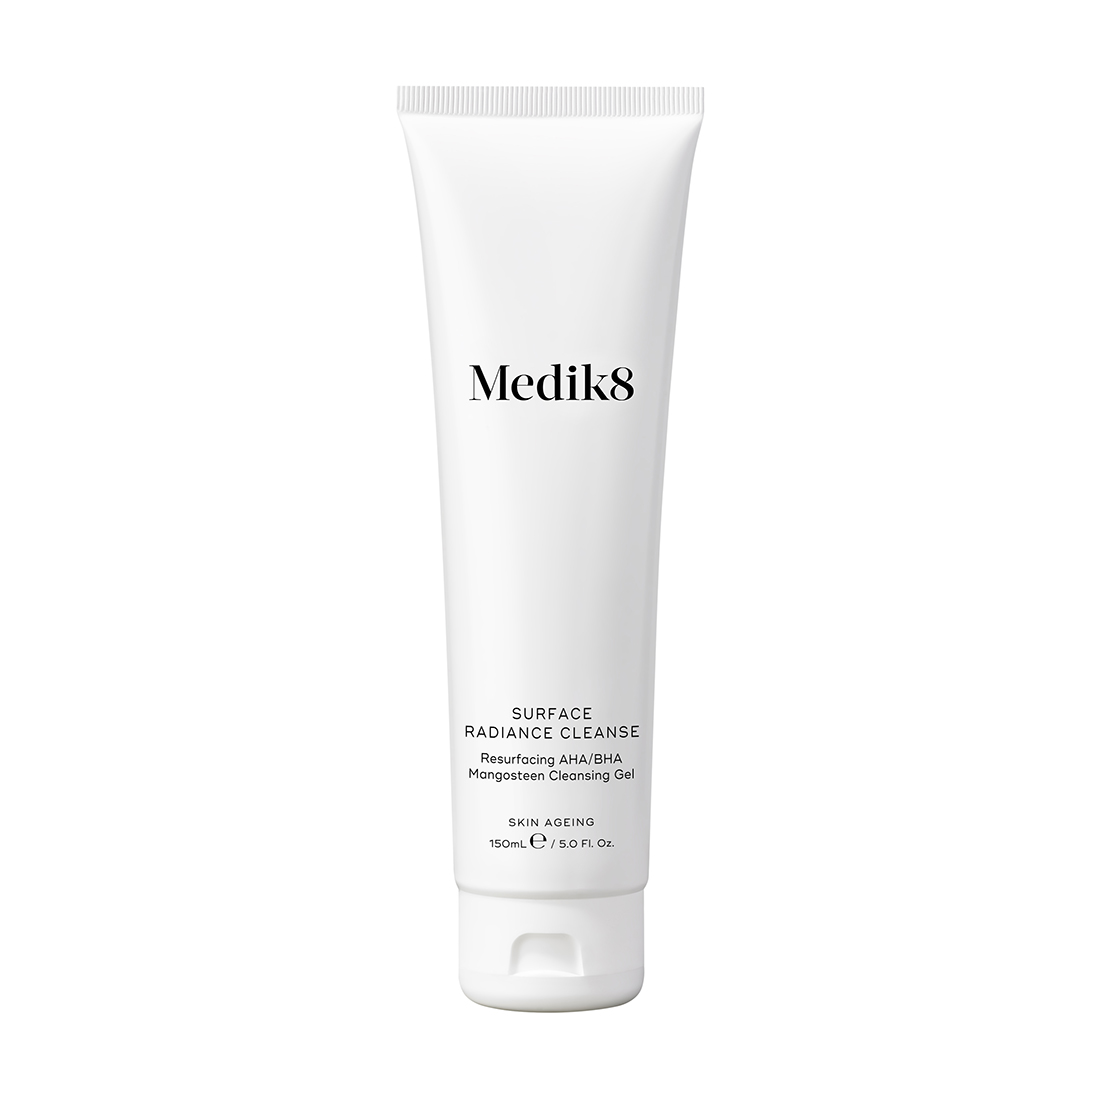 Medik8 Surface Radiance Cleanse 150 ml